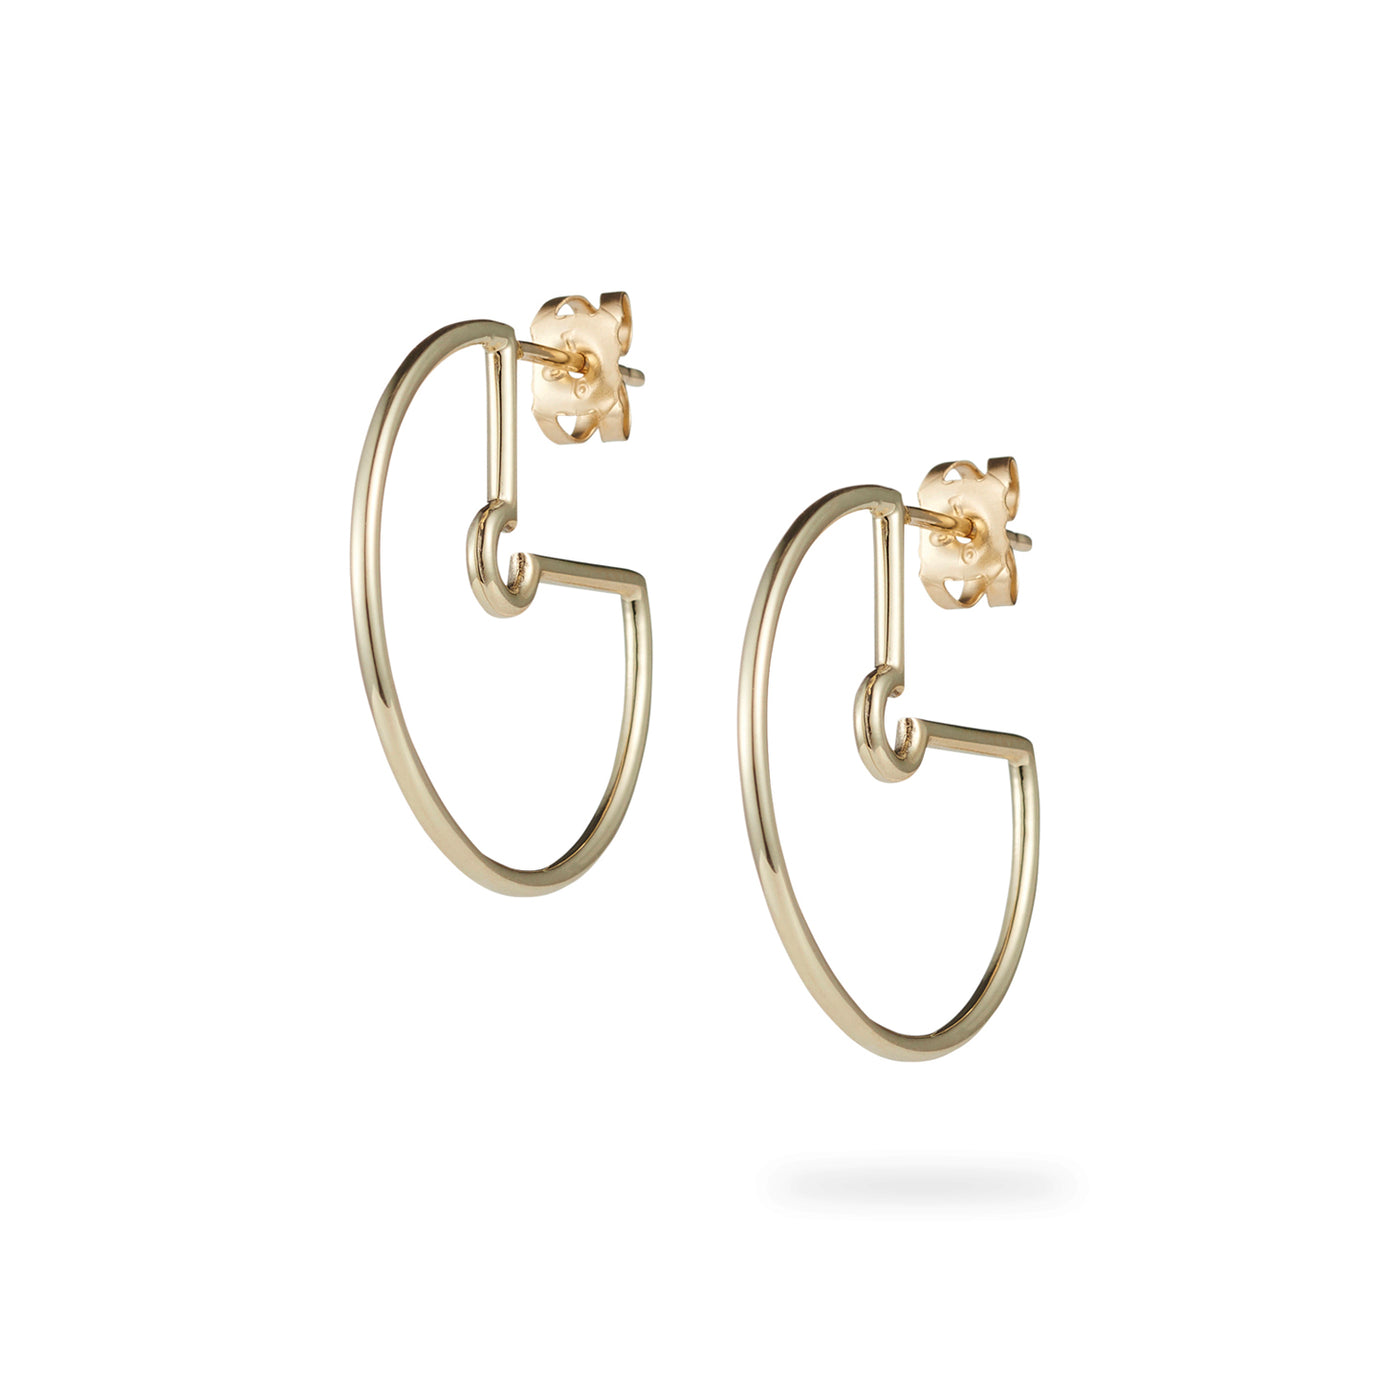 Luke Rose Jewellery yellow gold hoop earrings